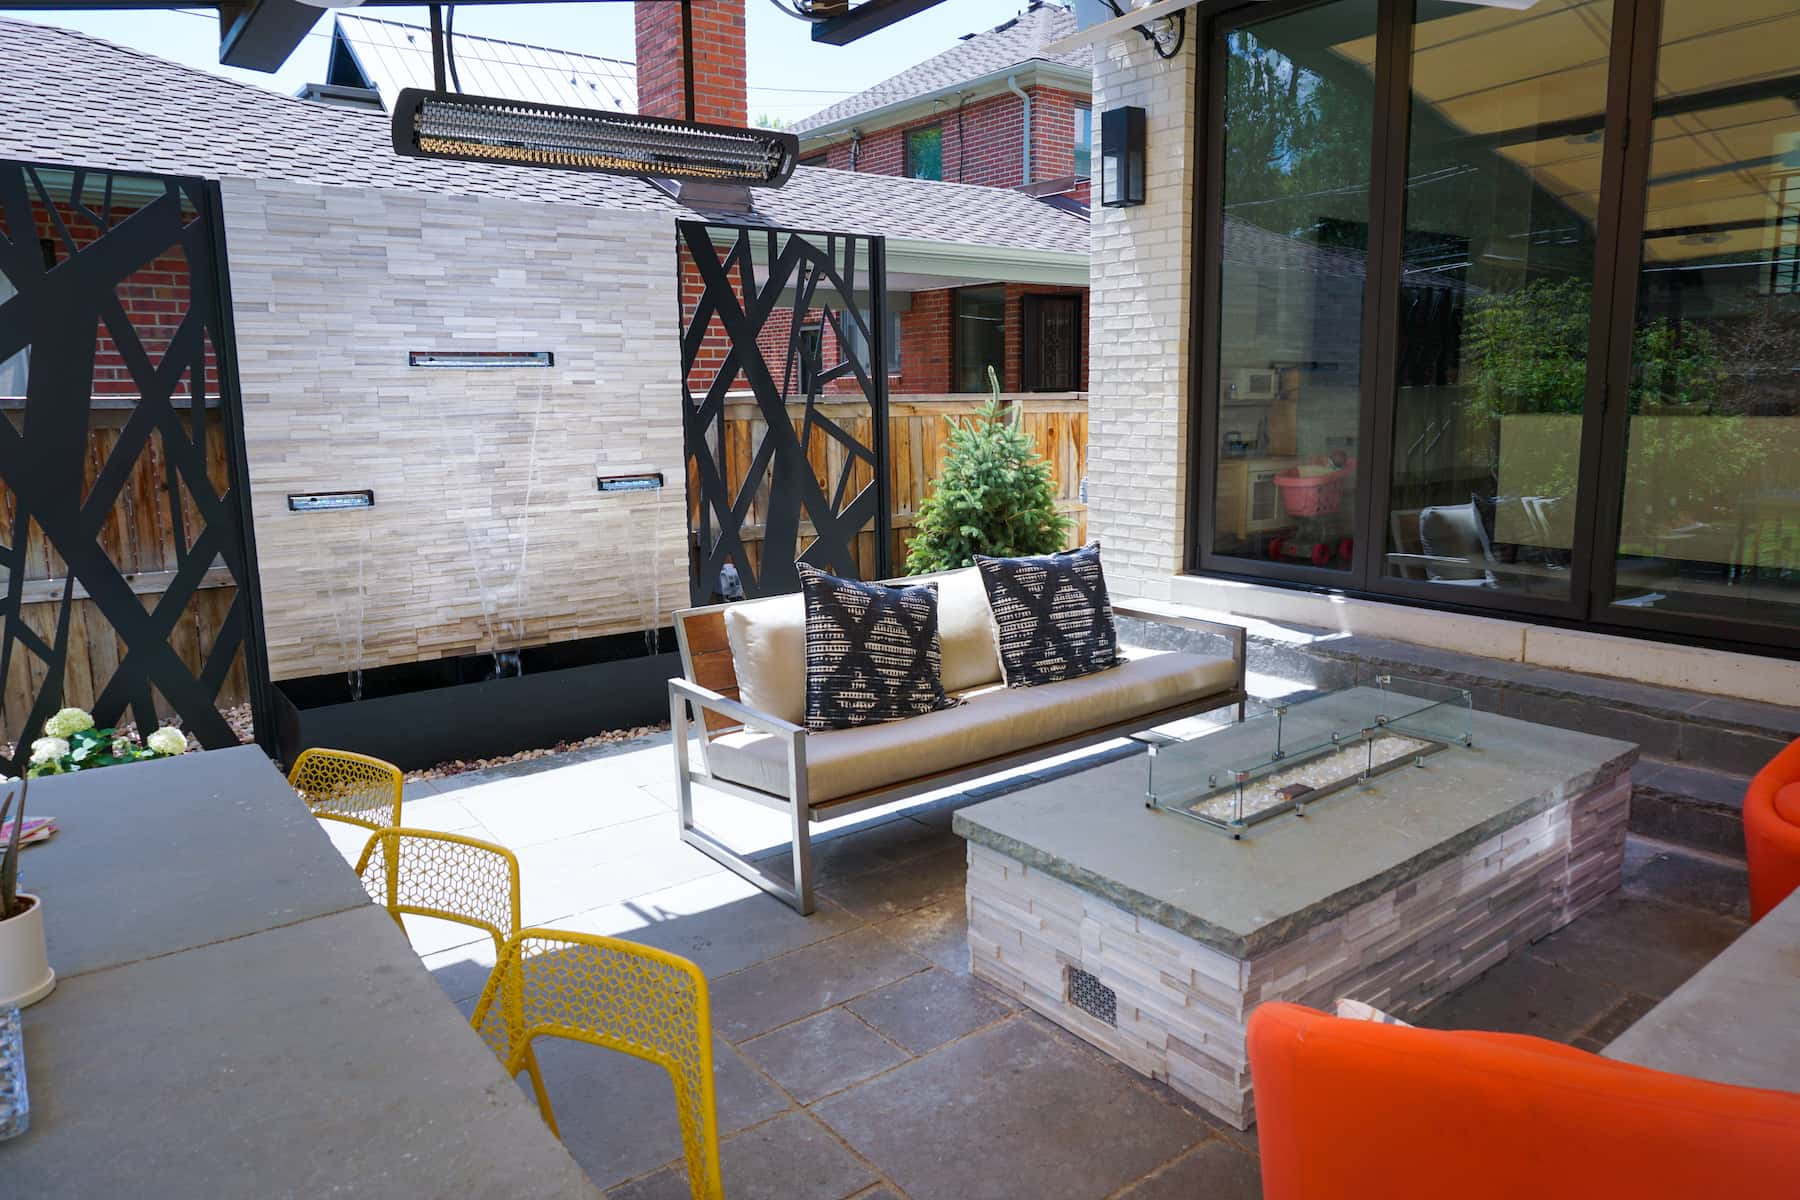 Firepit and Outdoor Seating Paver Patio Bonnie Brae Denver CO